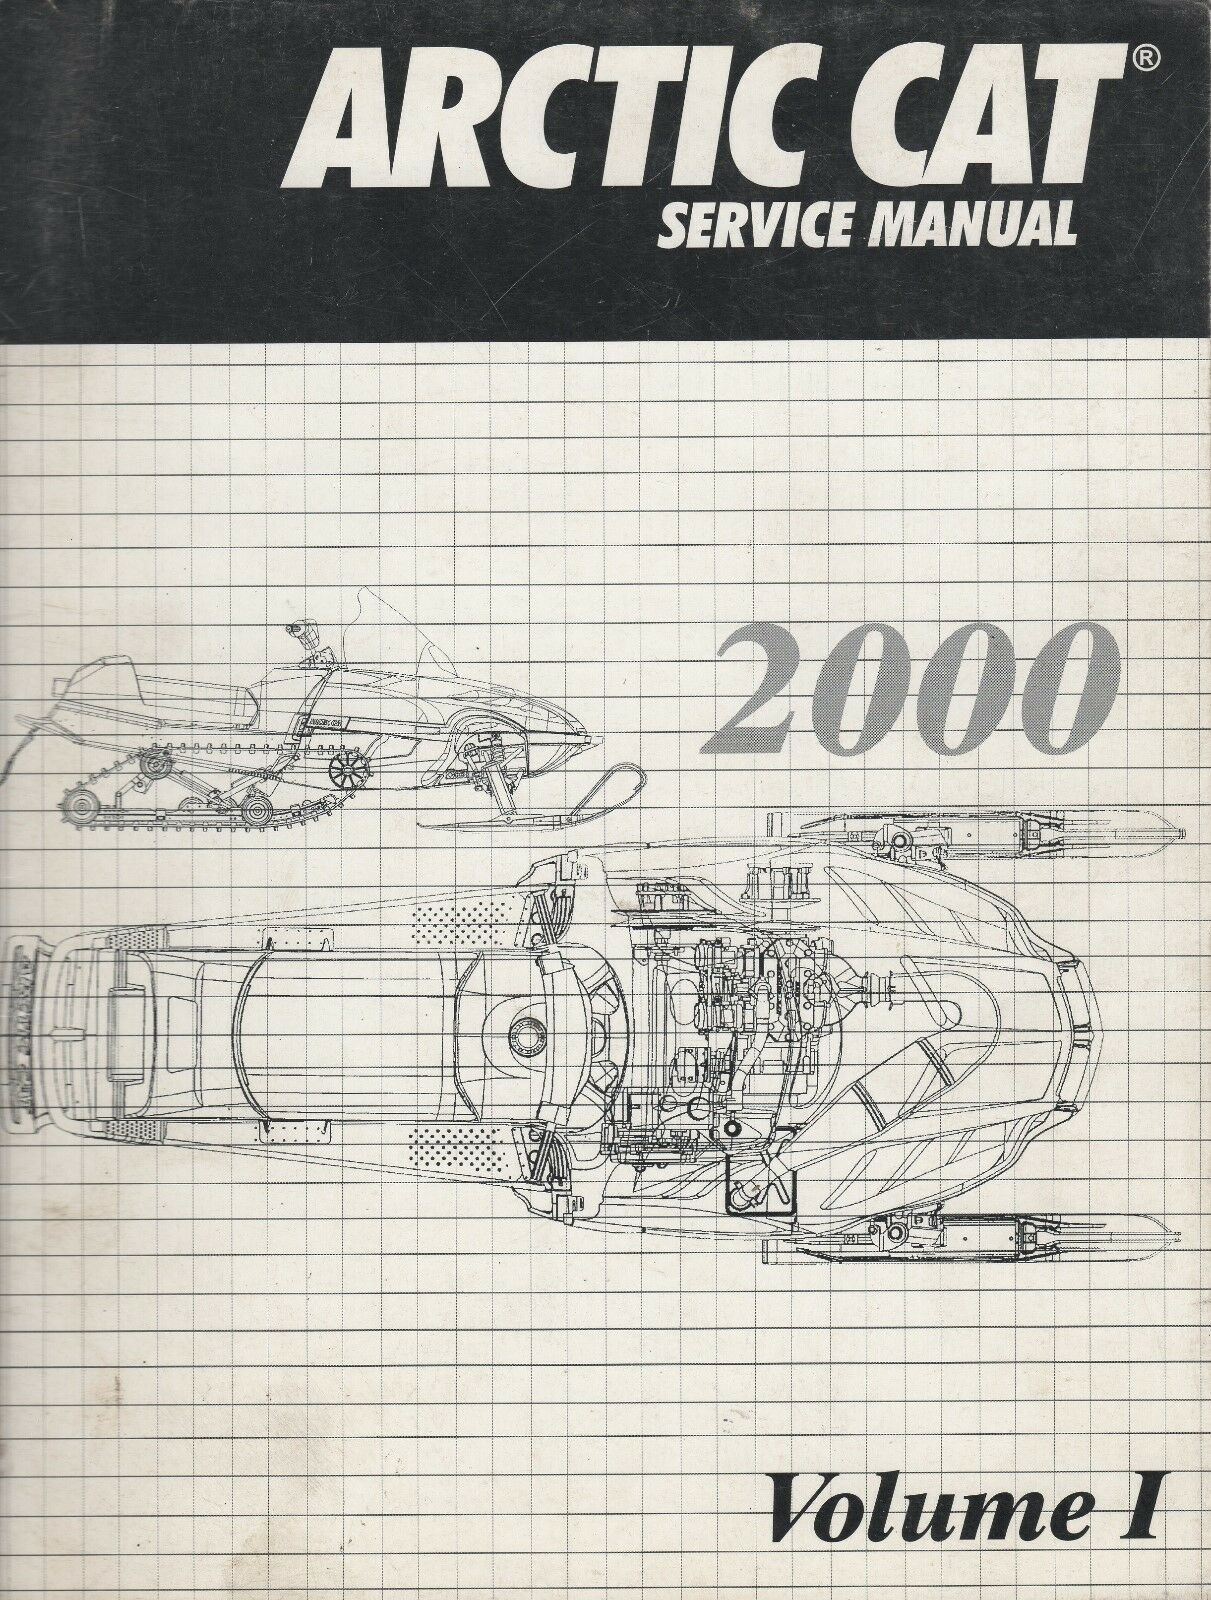 2000 ARCTIC CAT SNOWMOBILE VOLUME I SERVICE MANUAL P/N 2256-248 (211